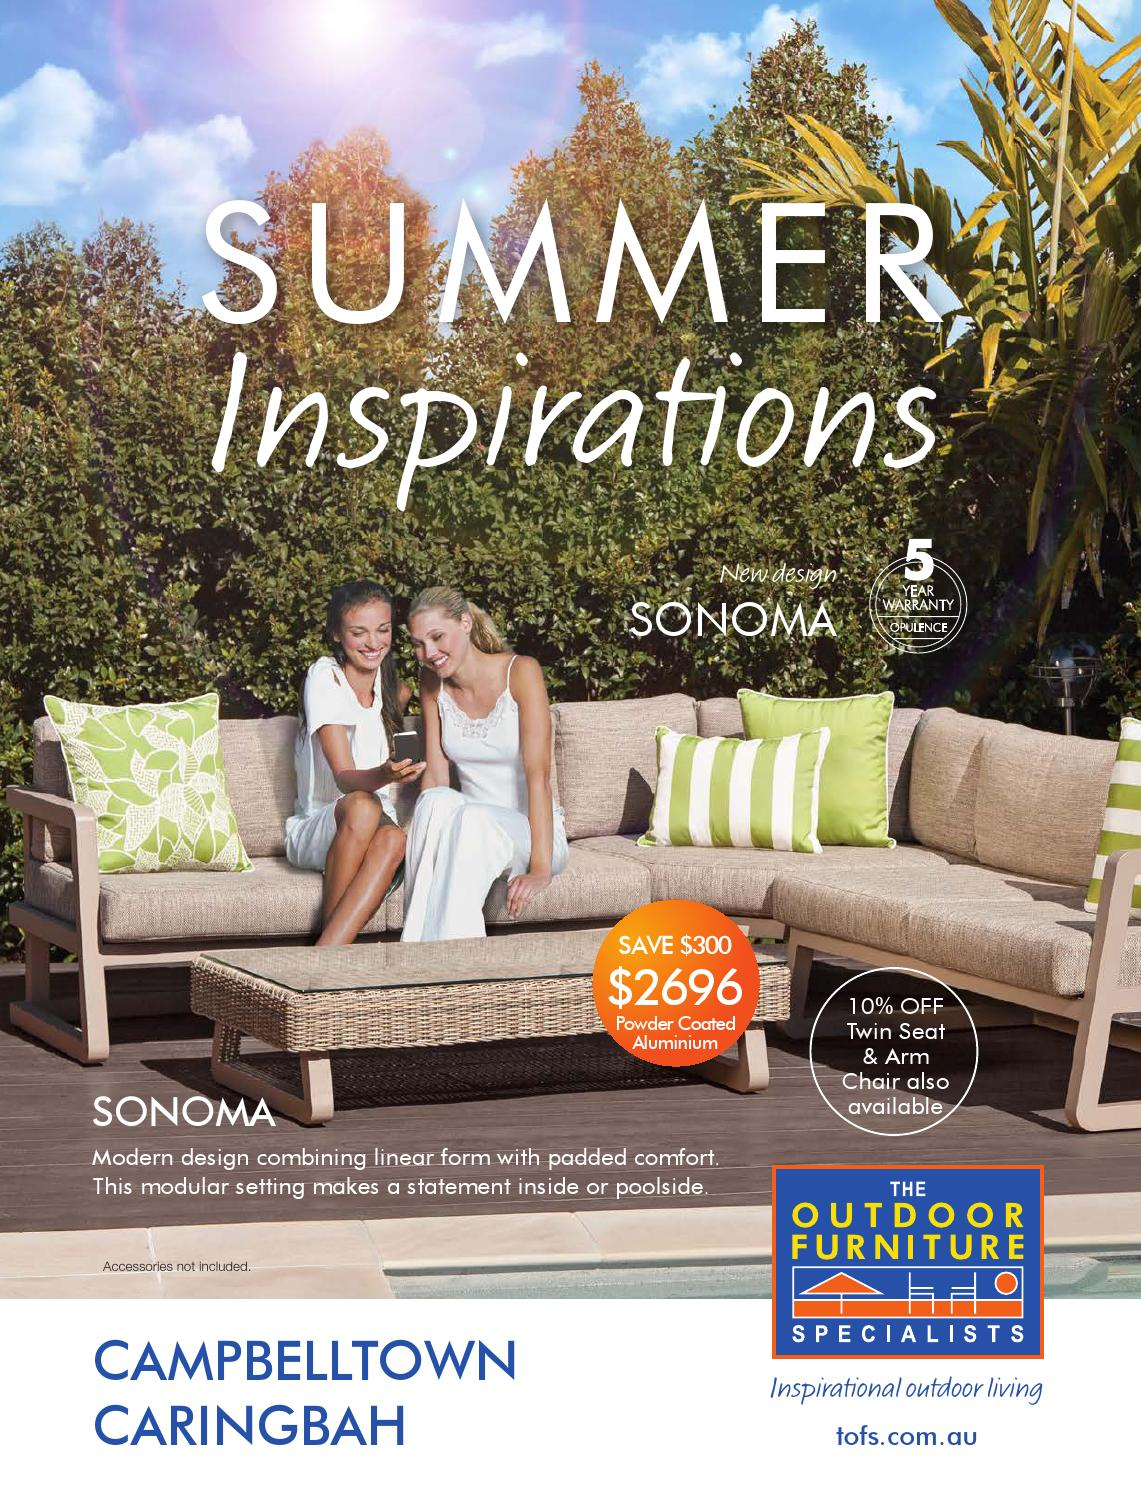 Campbelltown Furniture The Outdoor Furniture Specialists Campbelltown Summer